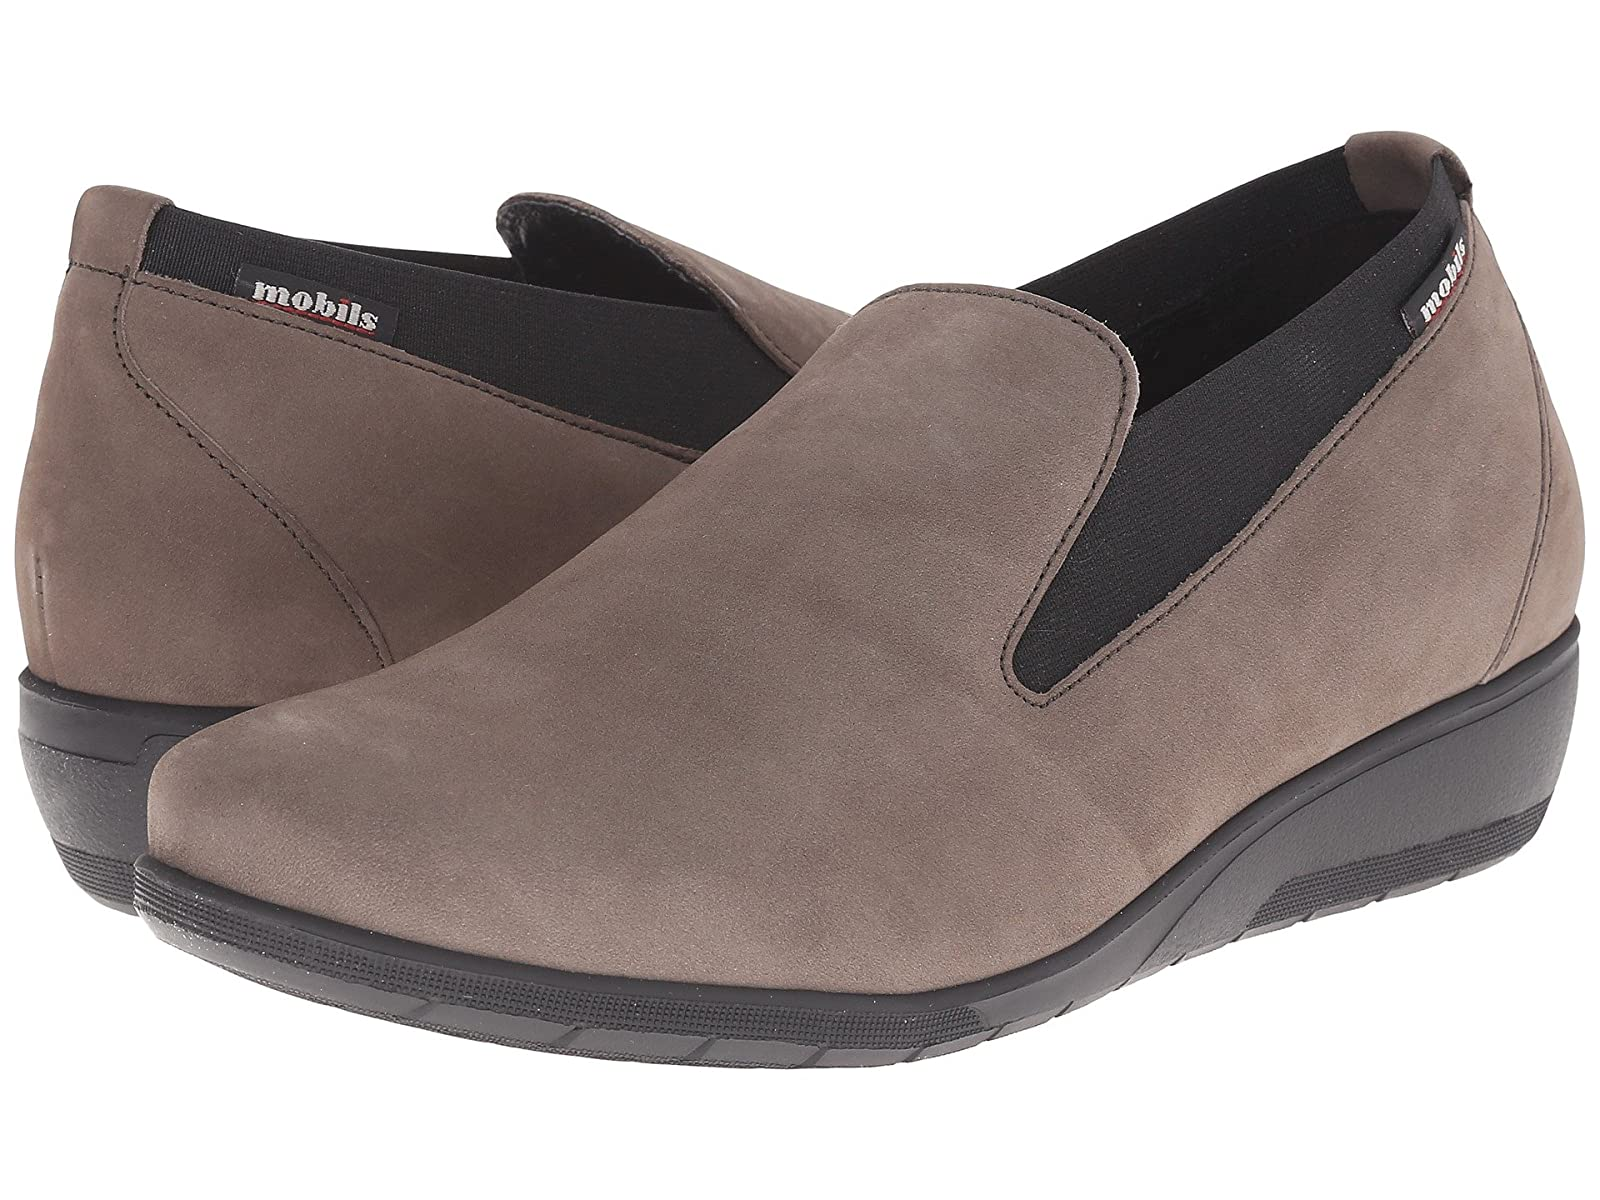 Mephisto JerrieCheap and distinctive eye-catching shoes